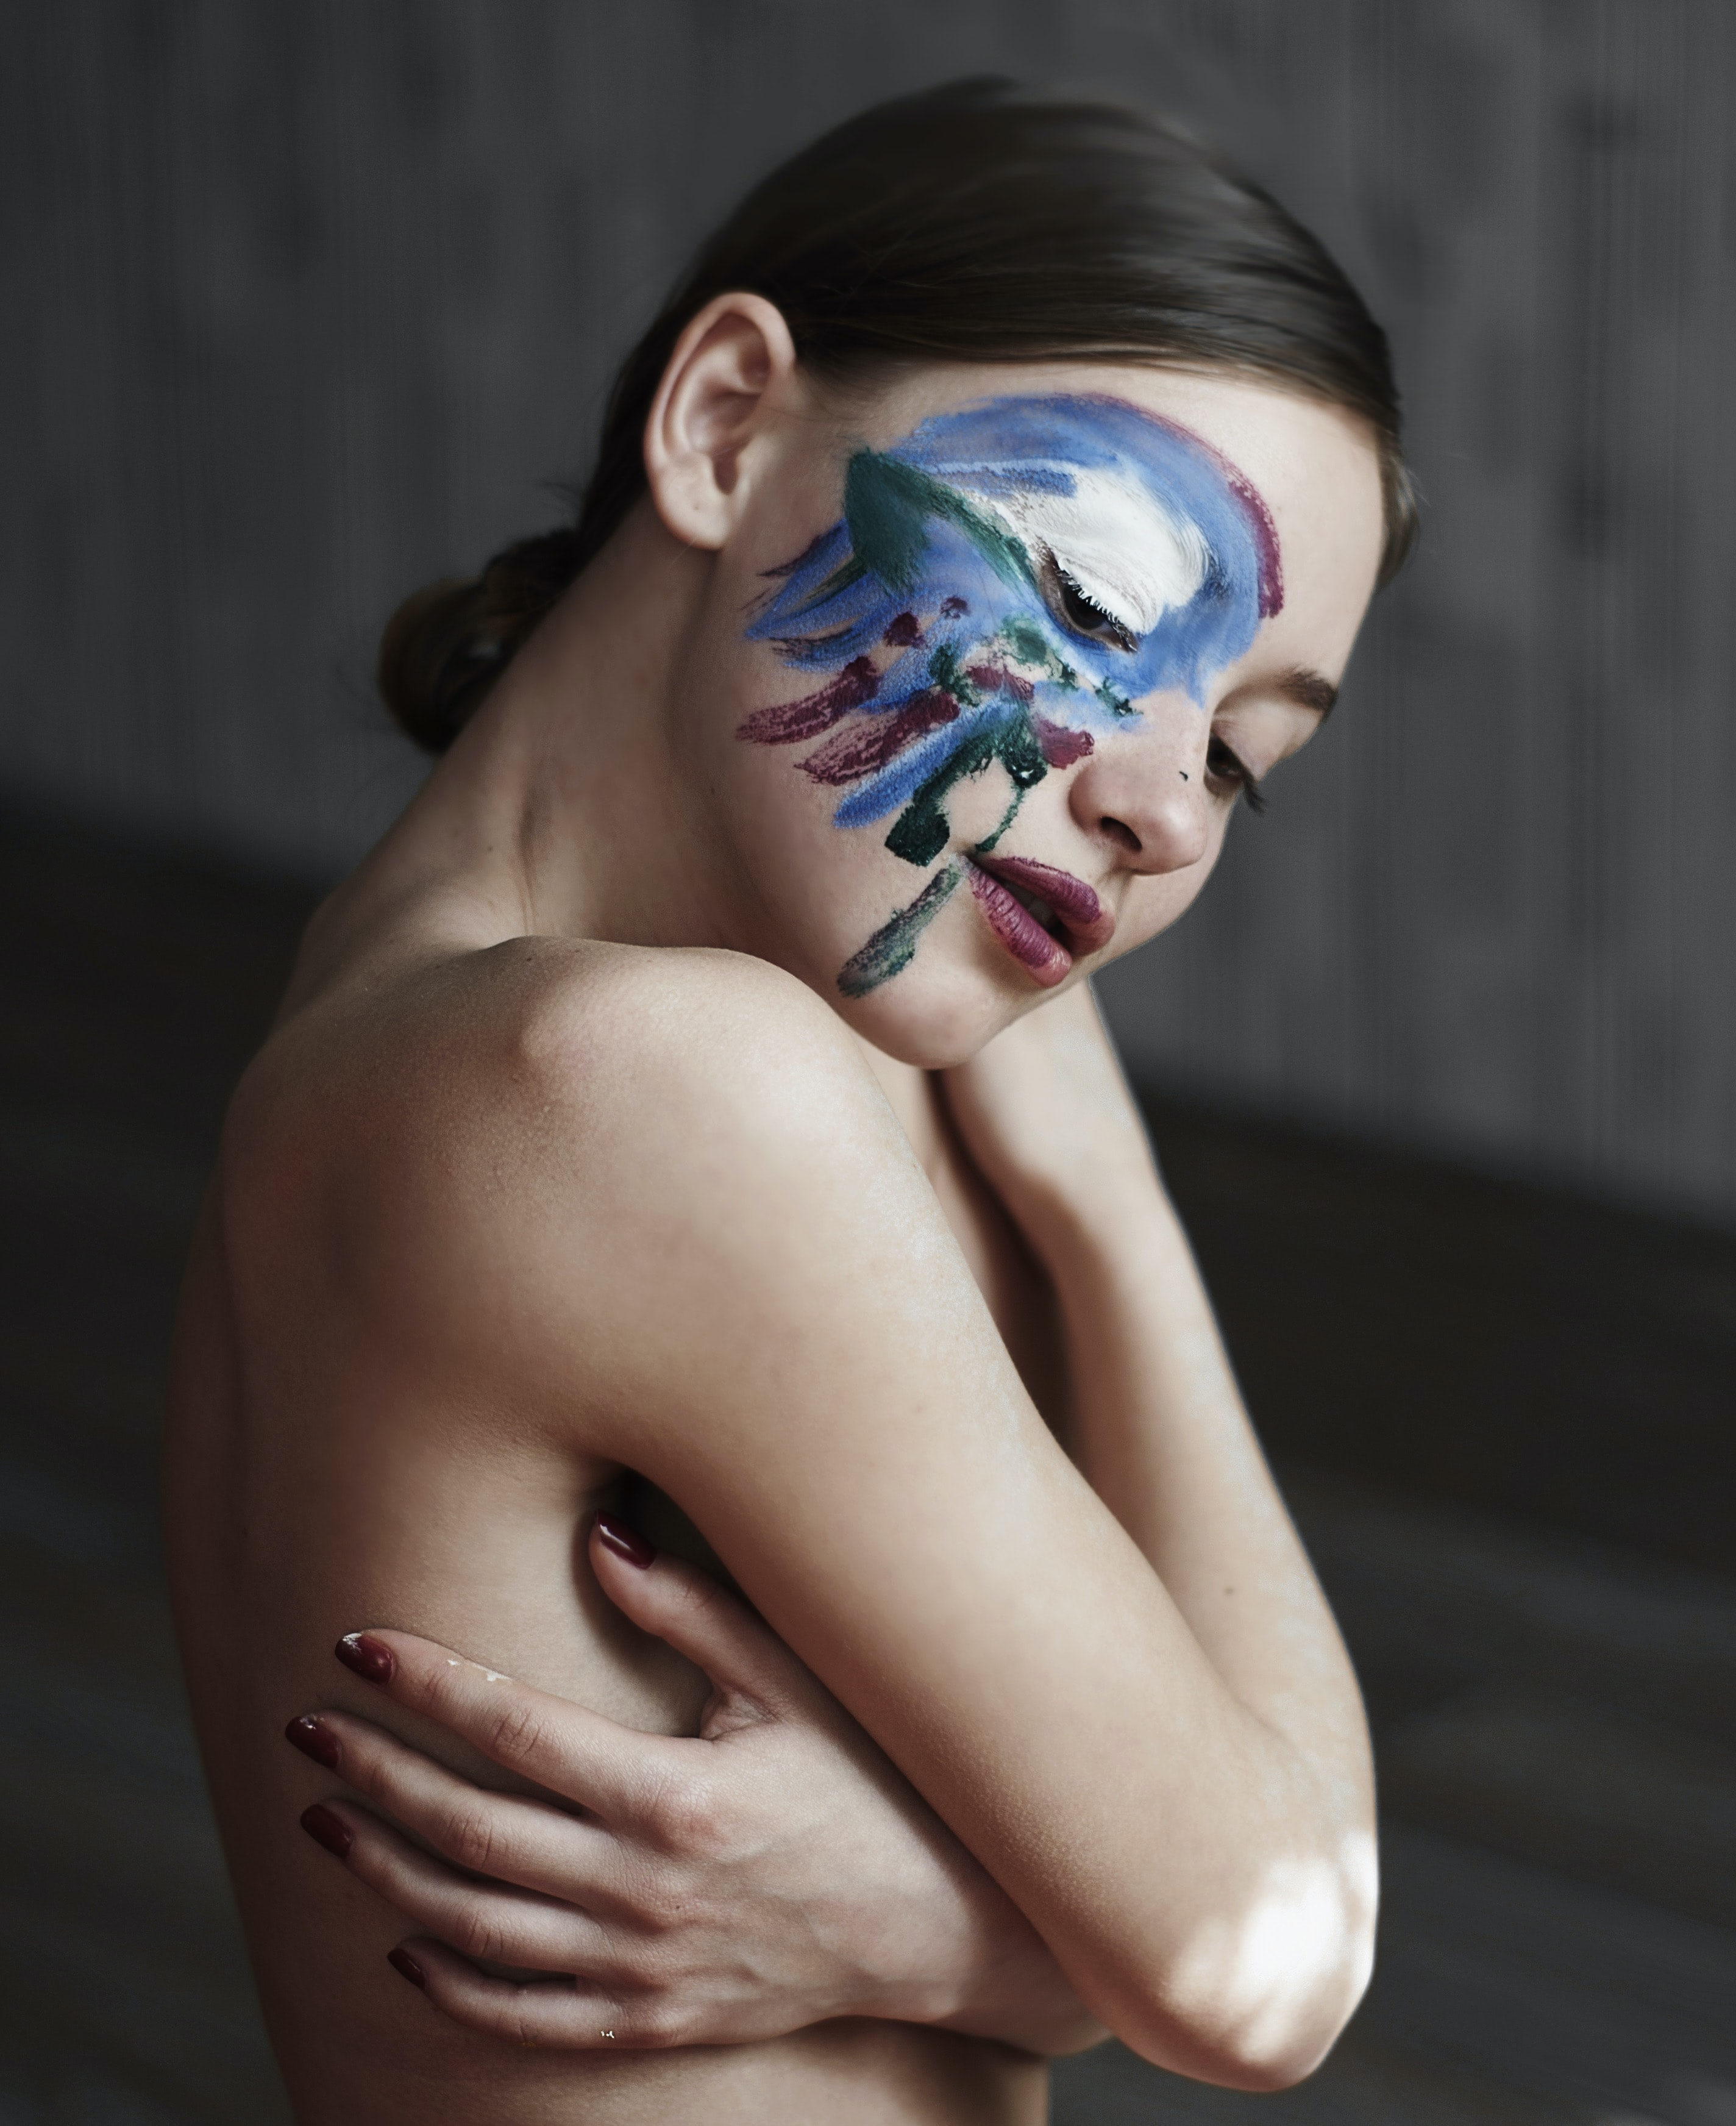 Woman posing topless with artistic body pain on her face